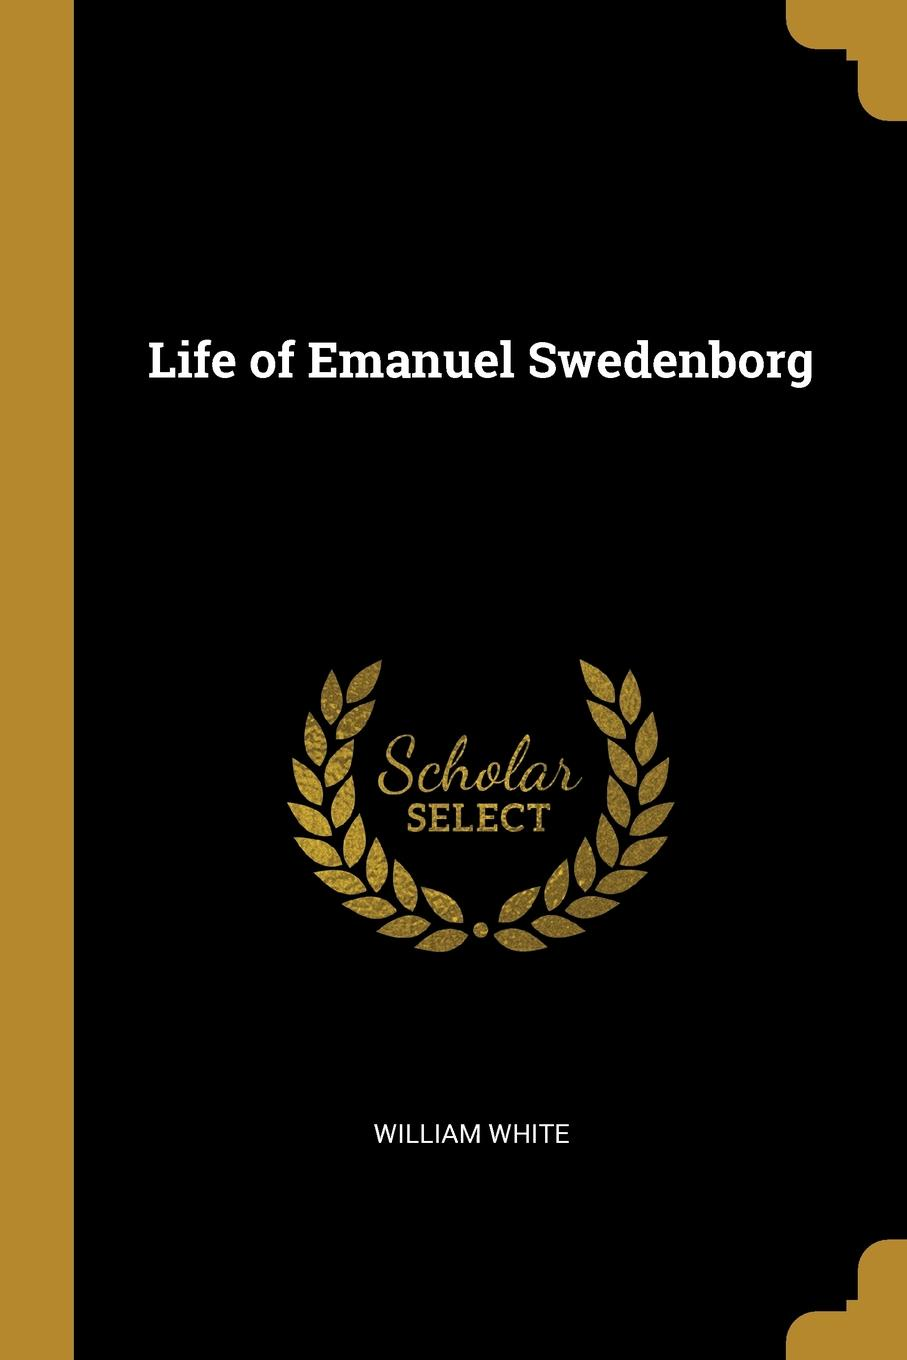 William White. Life of Emanuel Swedenborg